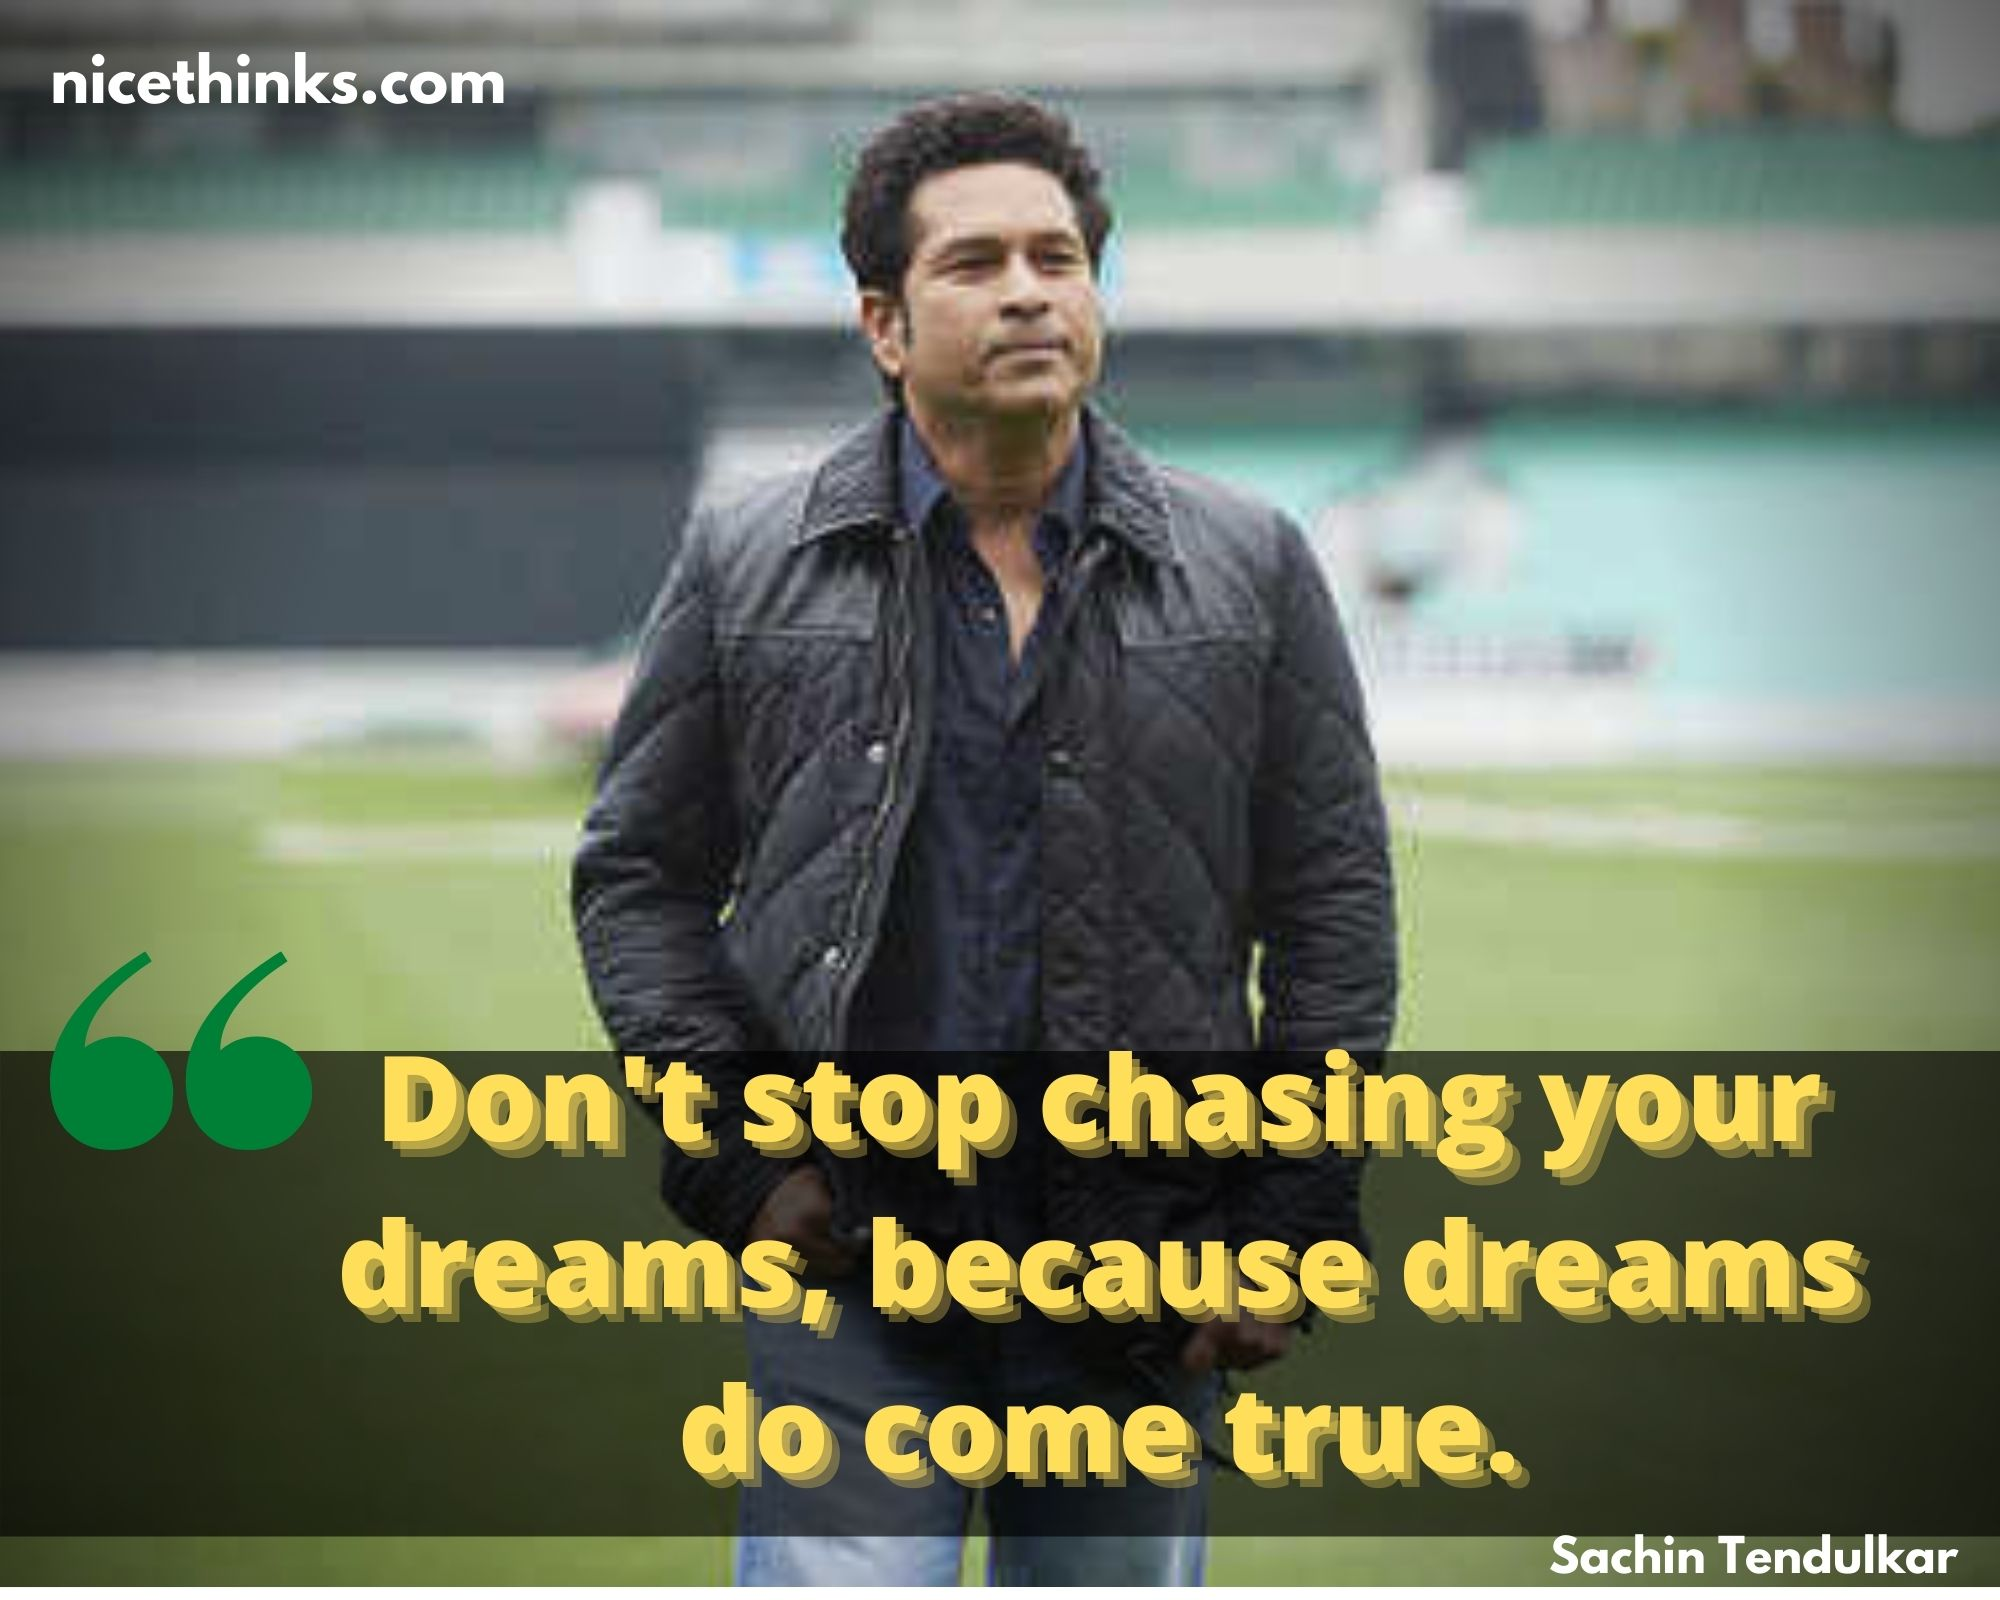 sachin tendulkar inspirational quotes